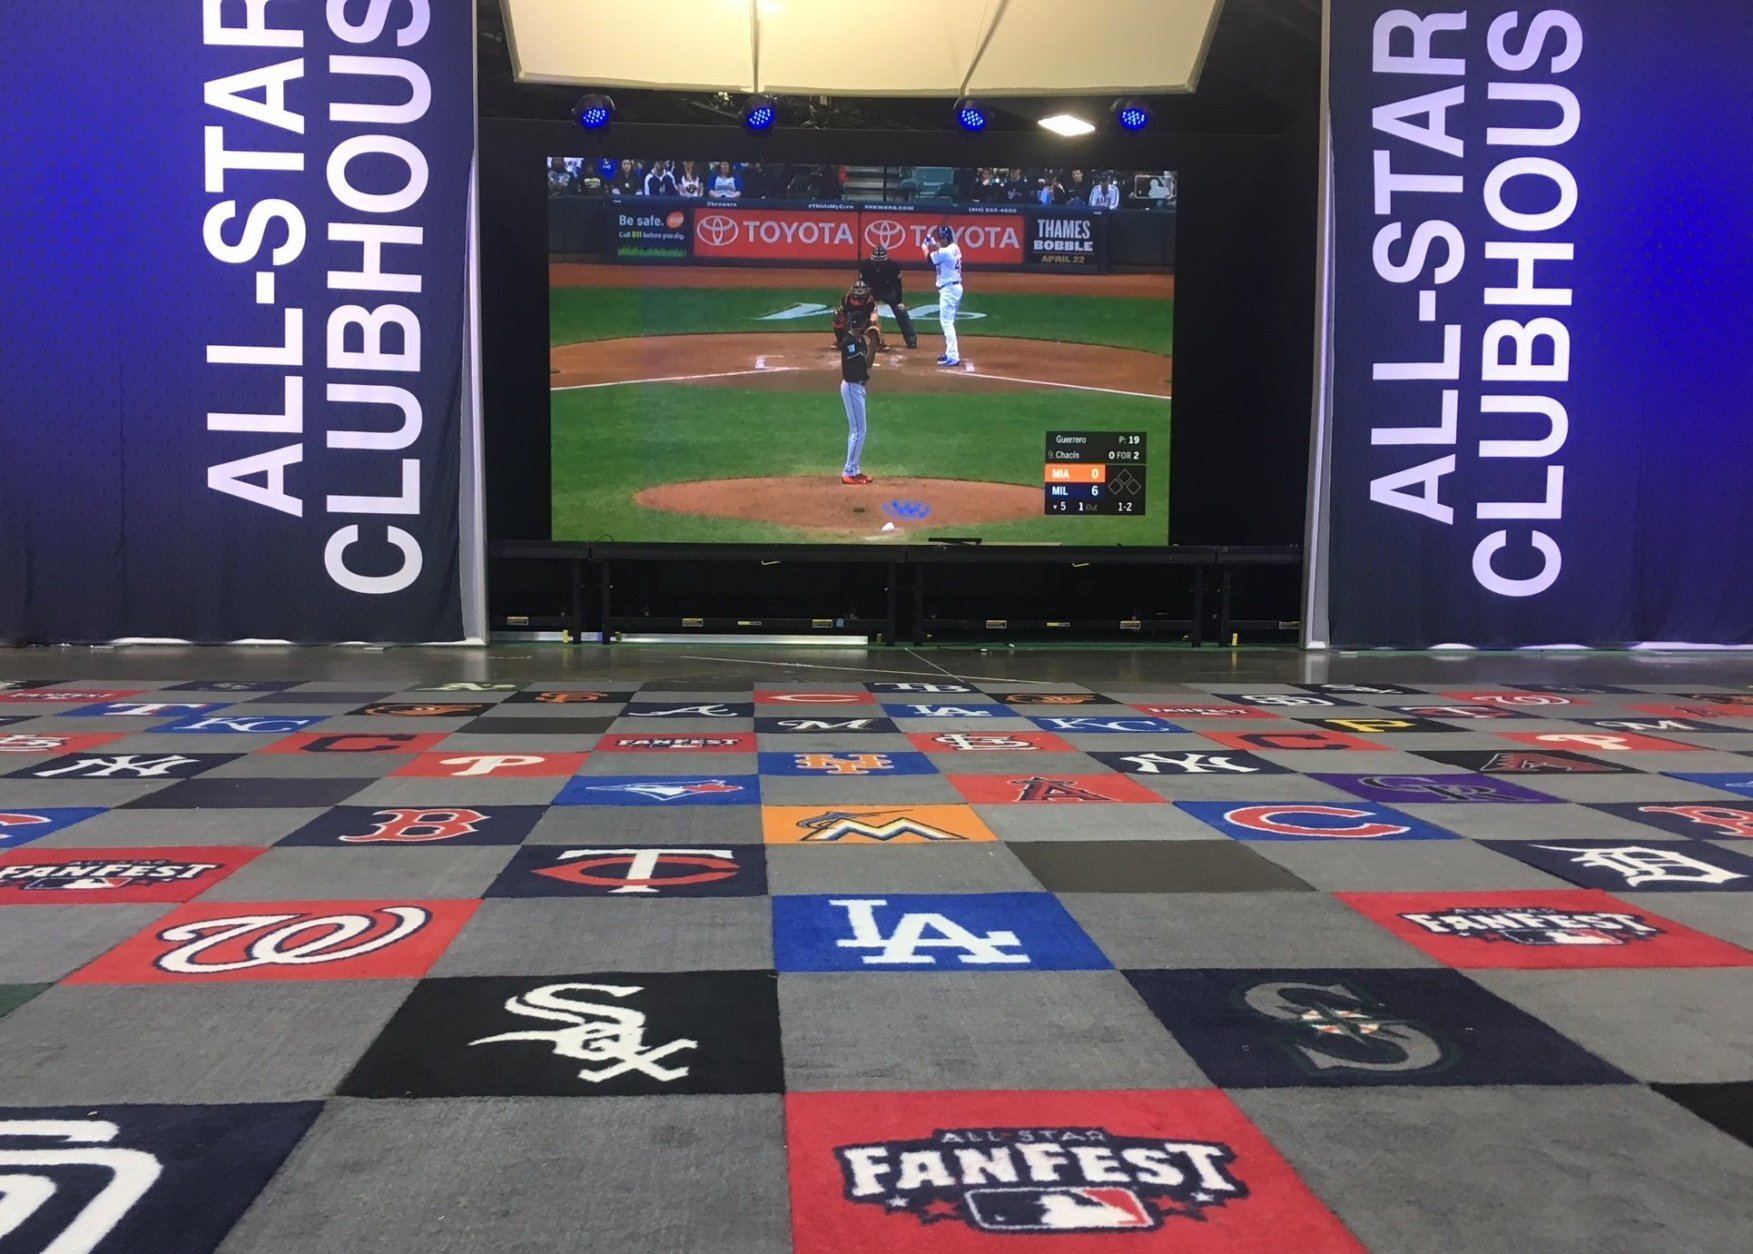 While the programming is D.C.-heavy, there's something for fans of every team throughout the exhibition. (WTOP/Noah Frank)